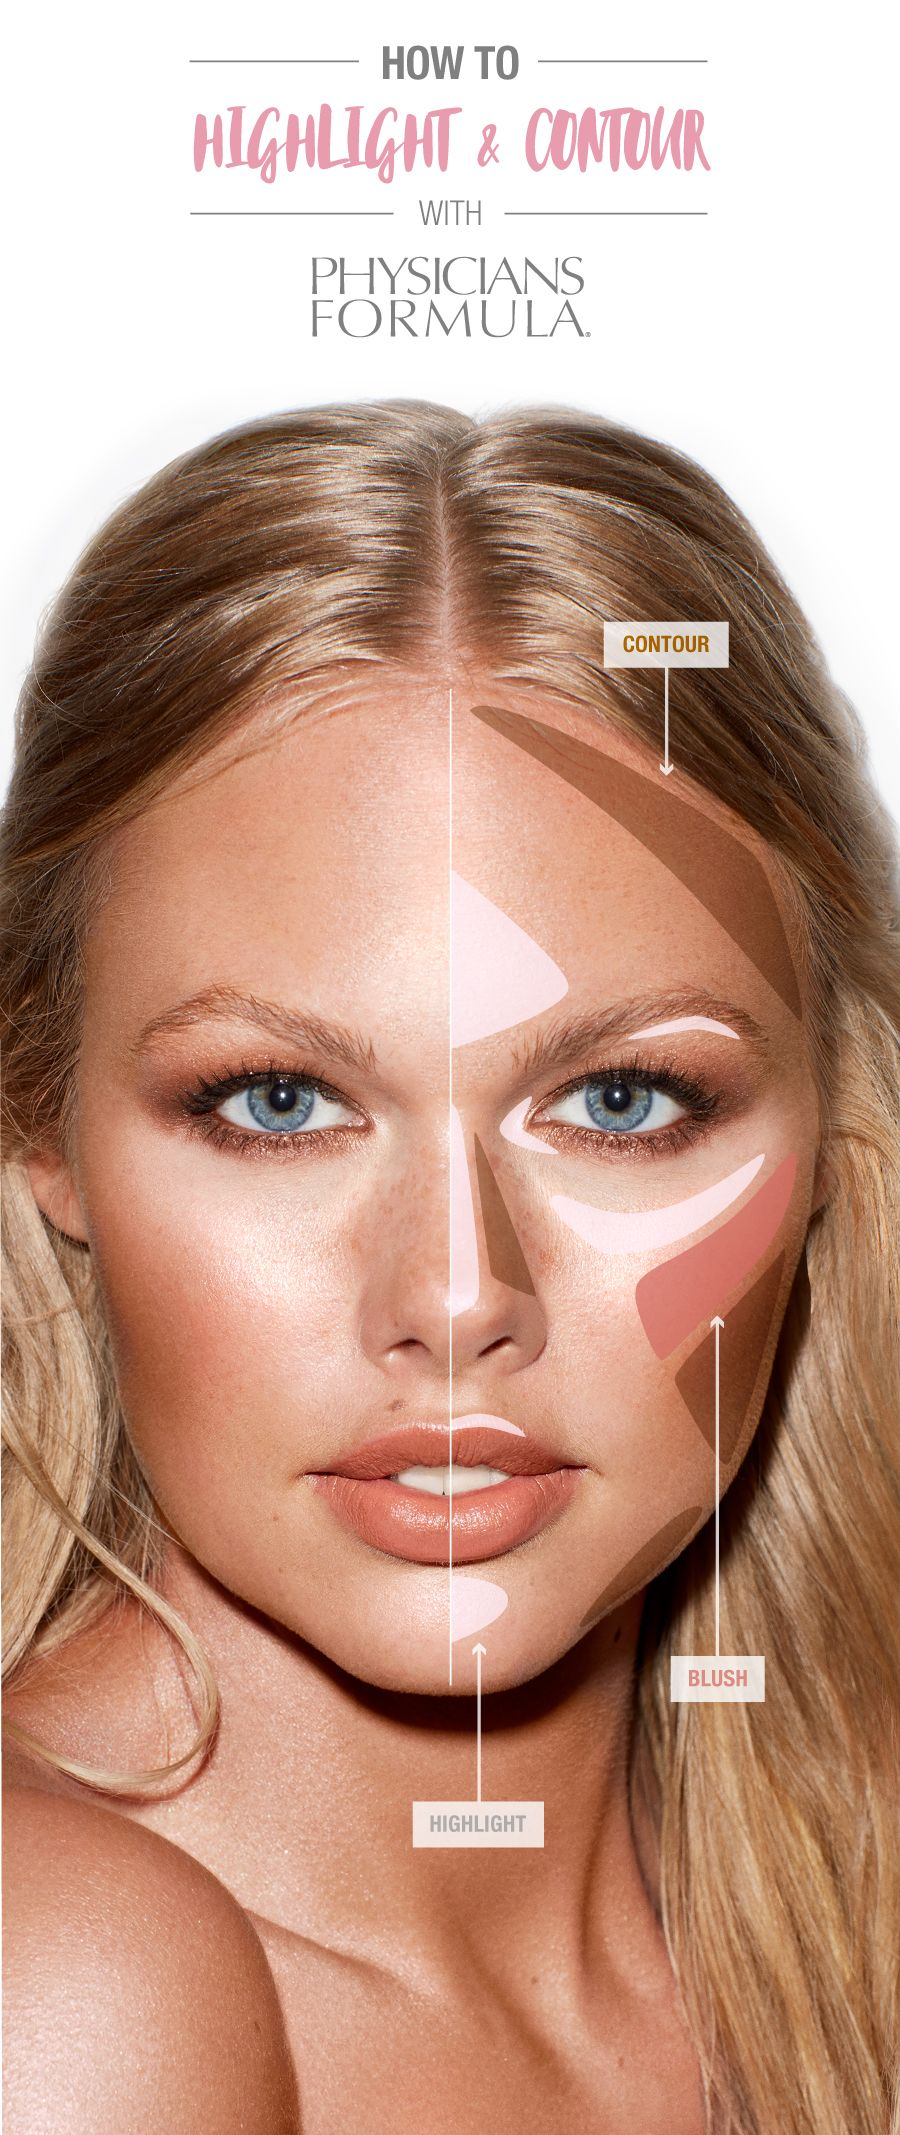 How To Add contour, blush and highlight Physicians